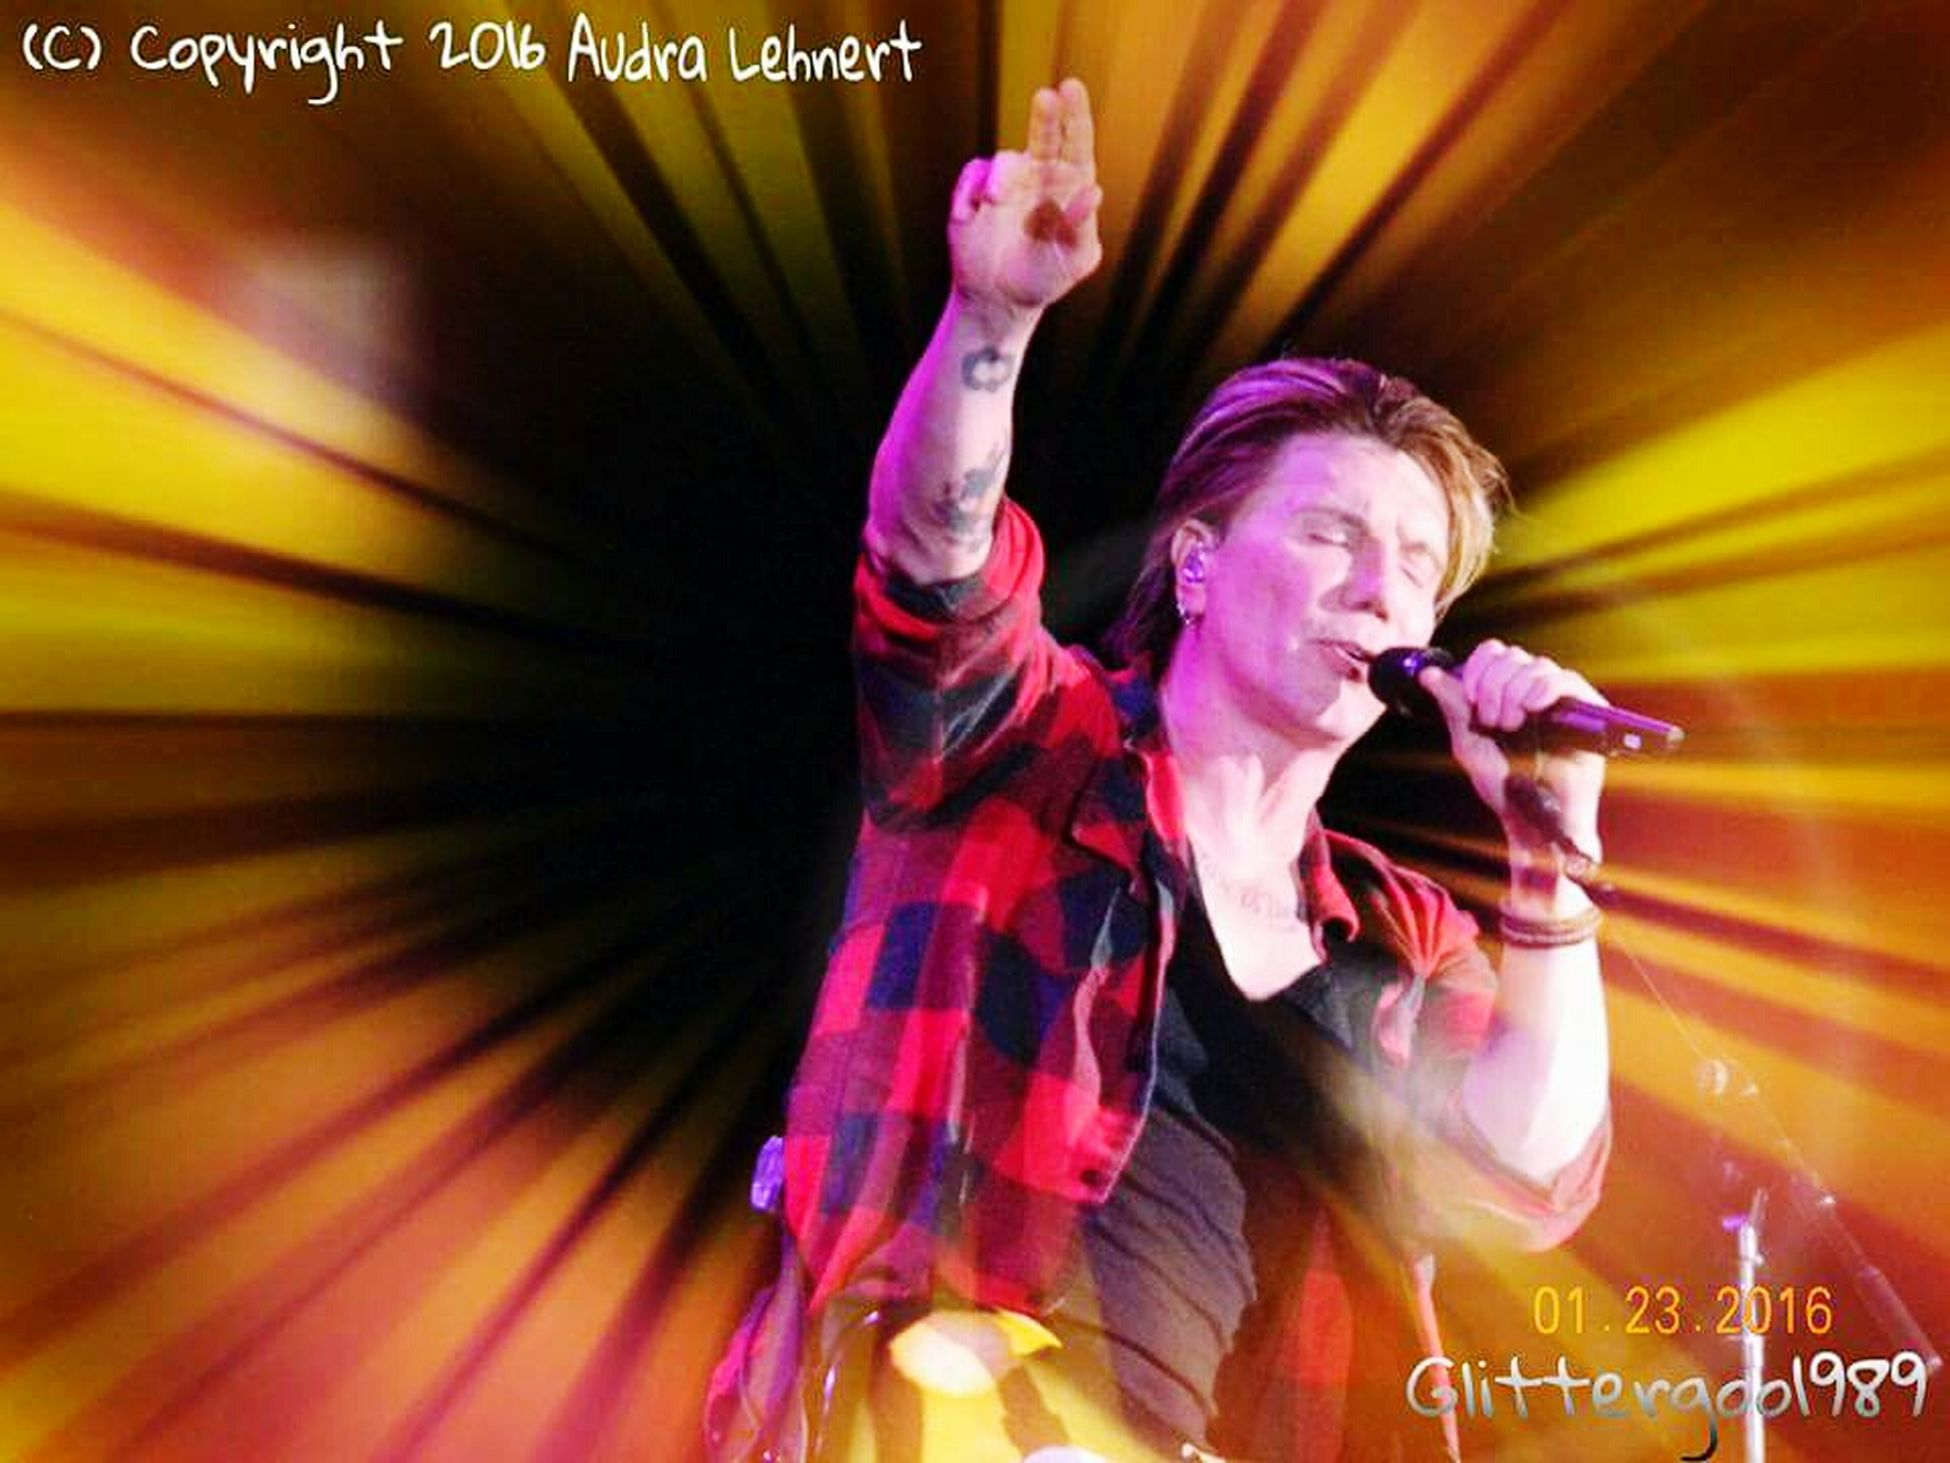 I believe this is the best shot I've ever taken of Johnny Rzeznik performing live😍 I added another neat light sequence to it to enhance the quality. John Rzeznik Goo Goo Dolls FireKeepers Casino